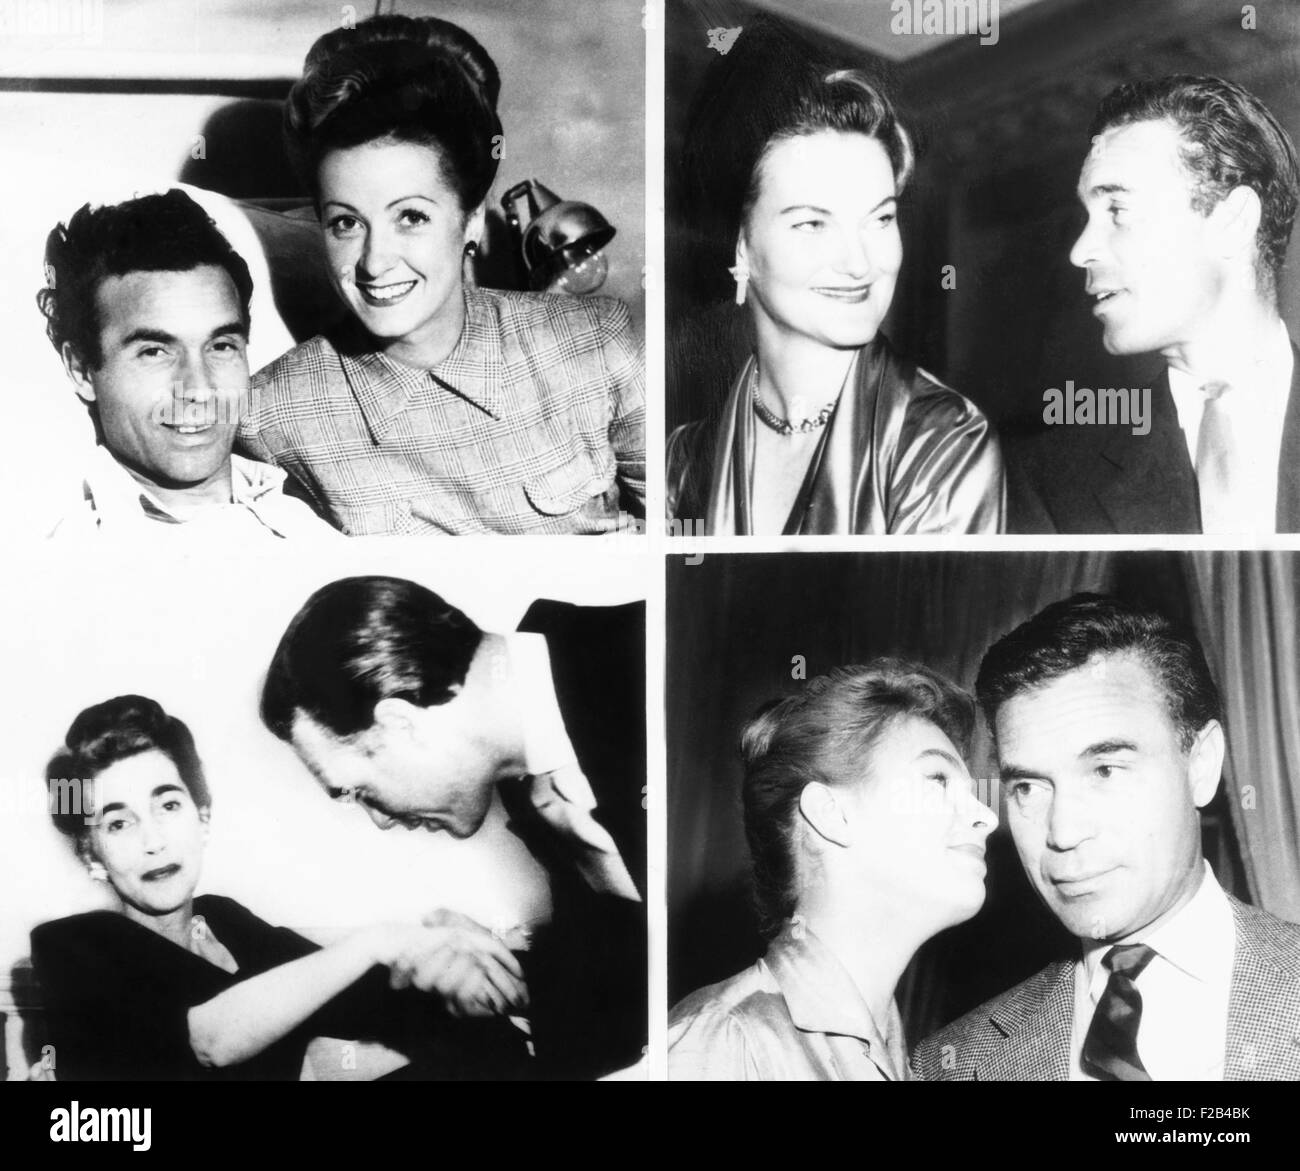 Porfirio Rubirosa with his four of his five wives. Top left: with actress Danielle Darrieux in 1944. Top right: - Stock Image